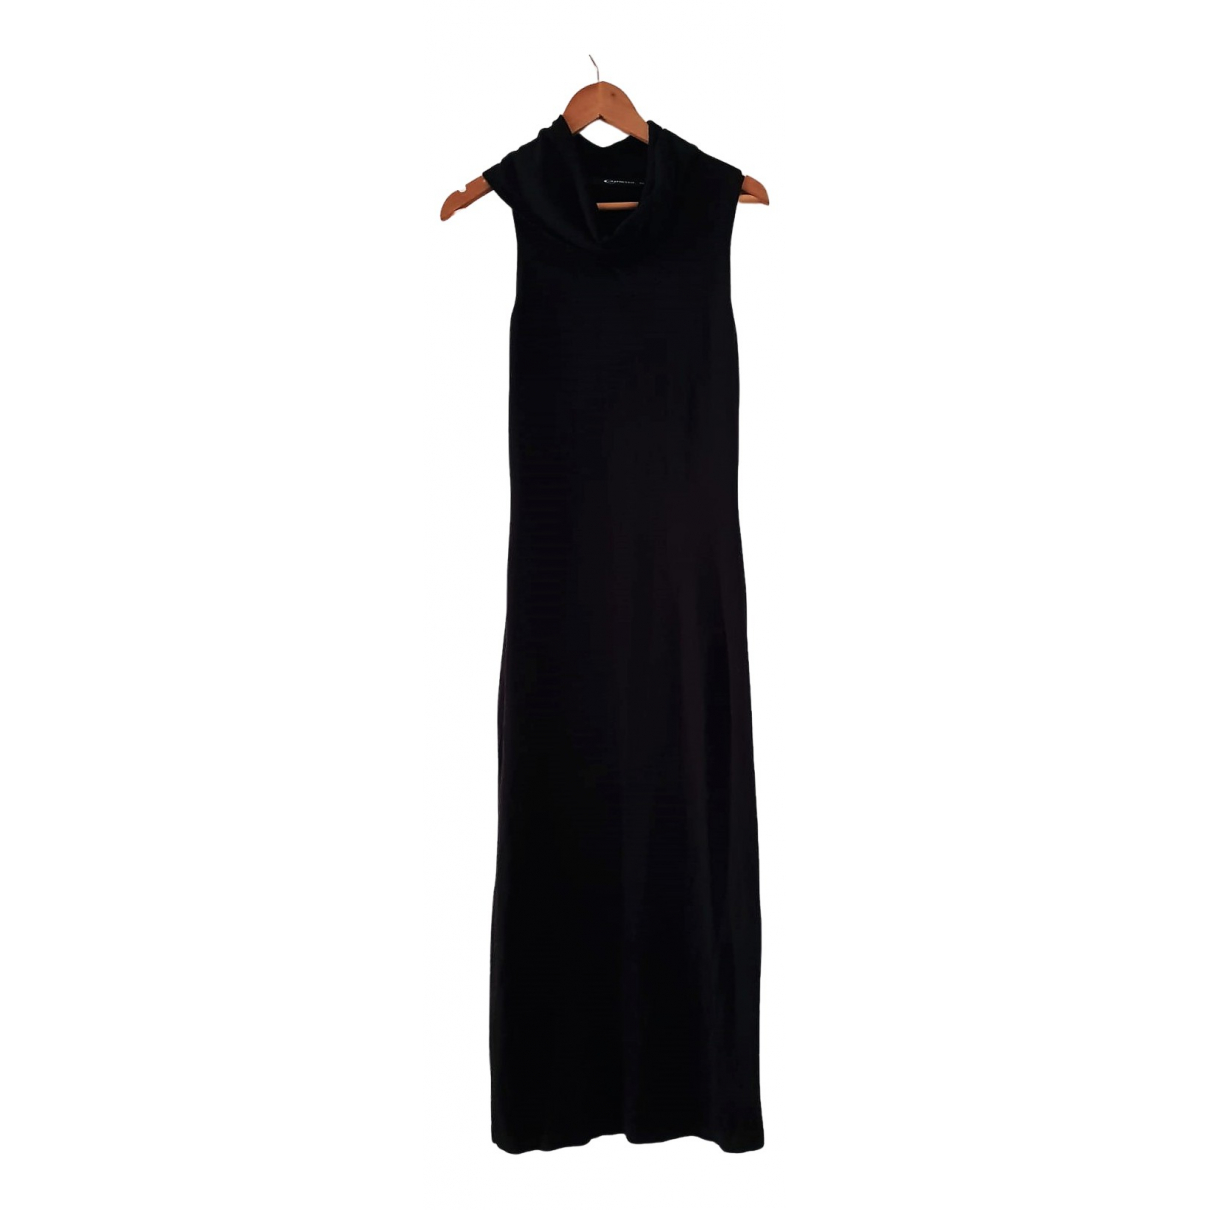 Non Signé / Unsigned \N Black dress for Women XS International